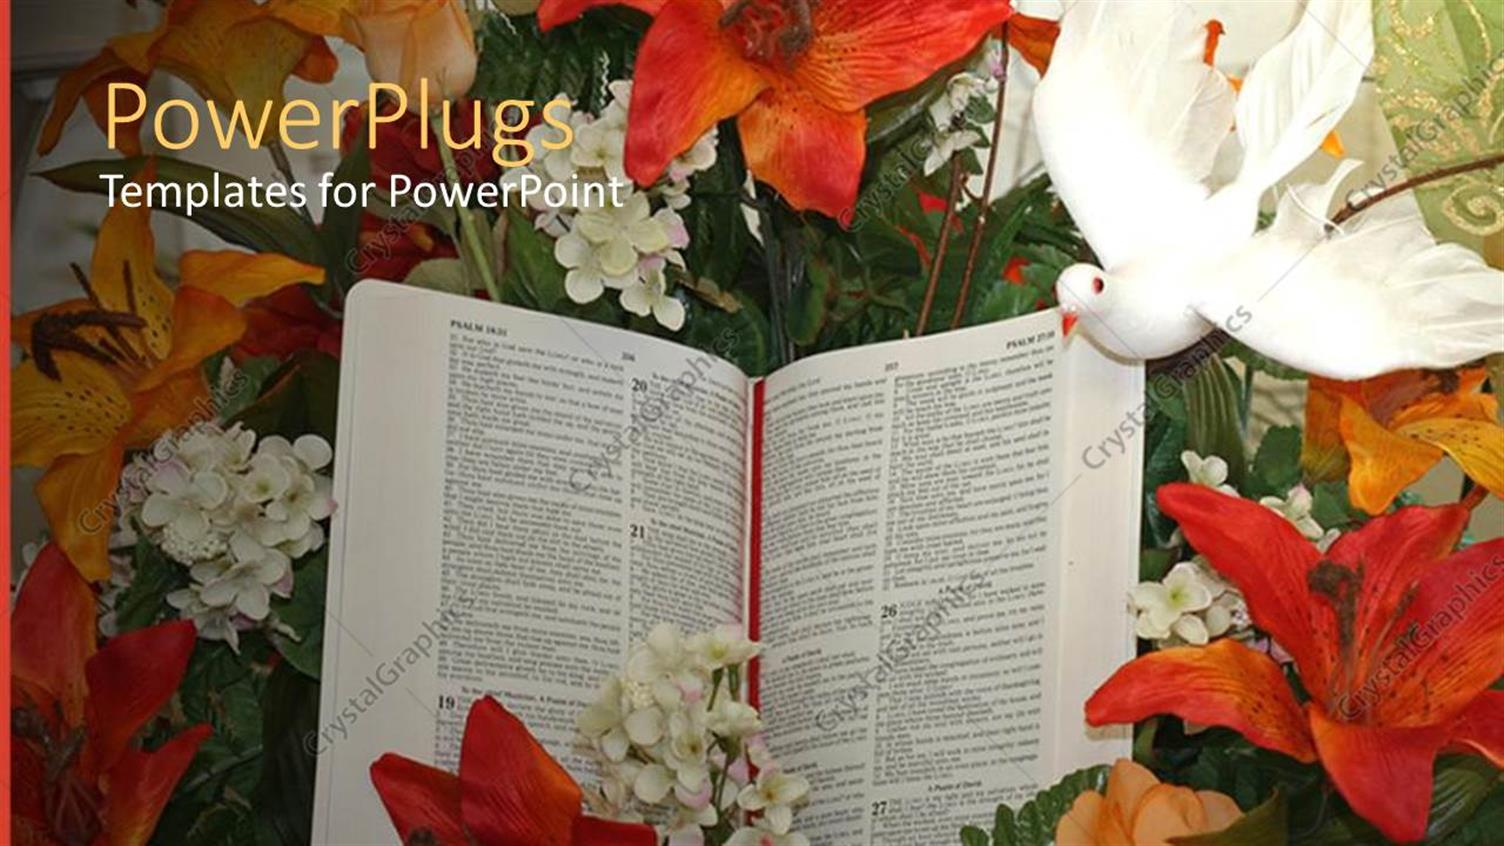 PowerPoint Template Displaying a Beautiful Depiction of a Doe and a Book Along with Flowers